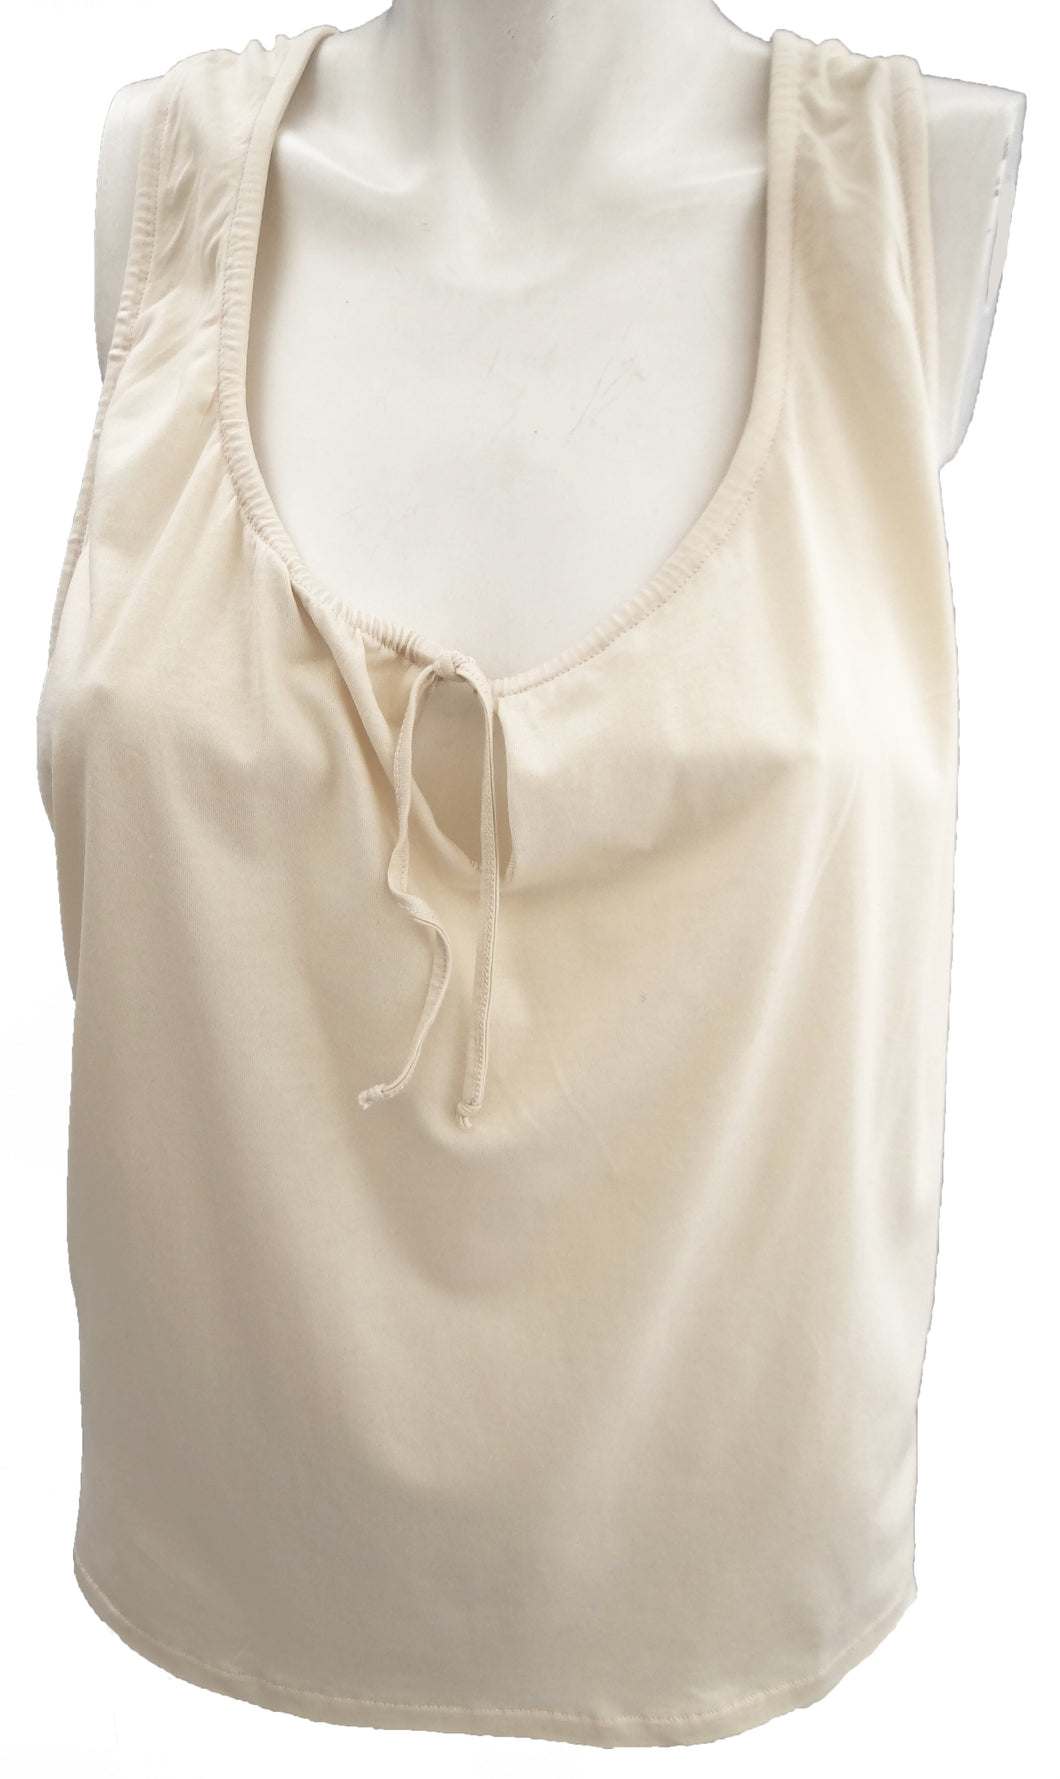 Marni Strappy Sun Top in Natural Cotton UK10-12